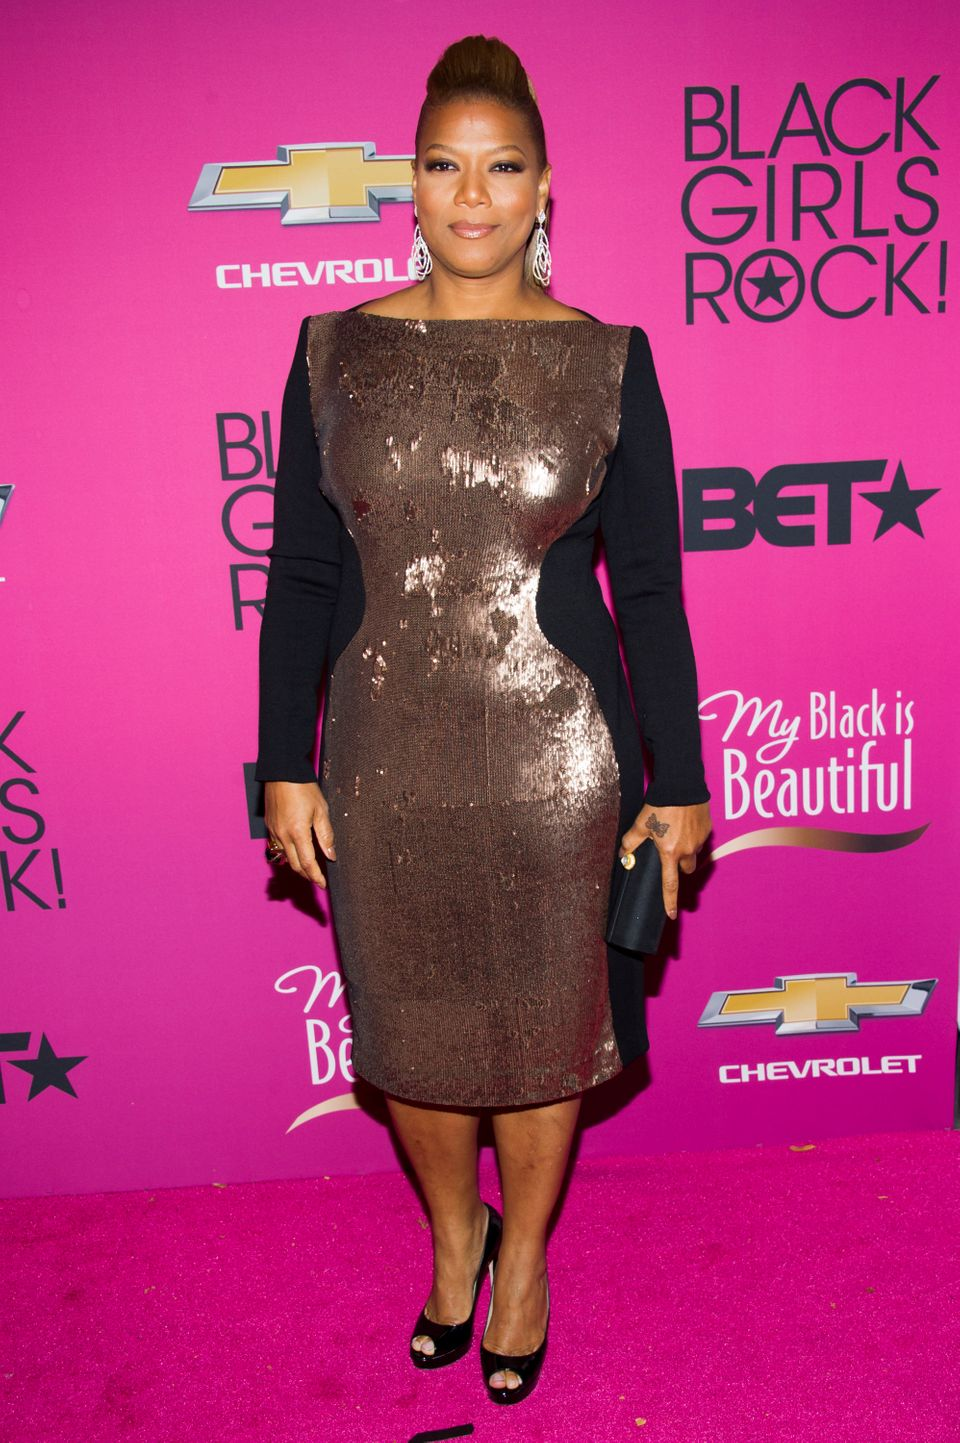 Queen Latifah attends BET Network's Black Girls Rock! on Saturday, Oct. 26, 2013 in Newark, N.J. (Photo by Charles Sykes/Invi